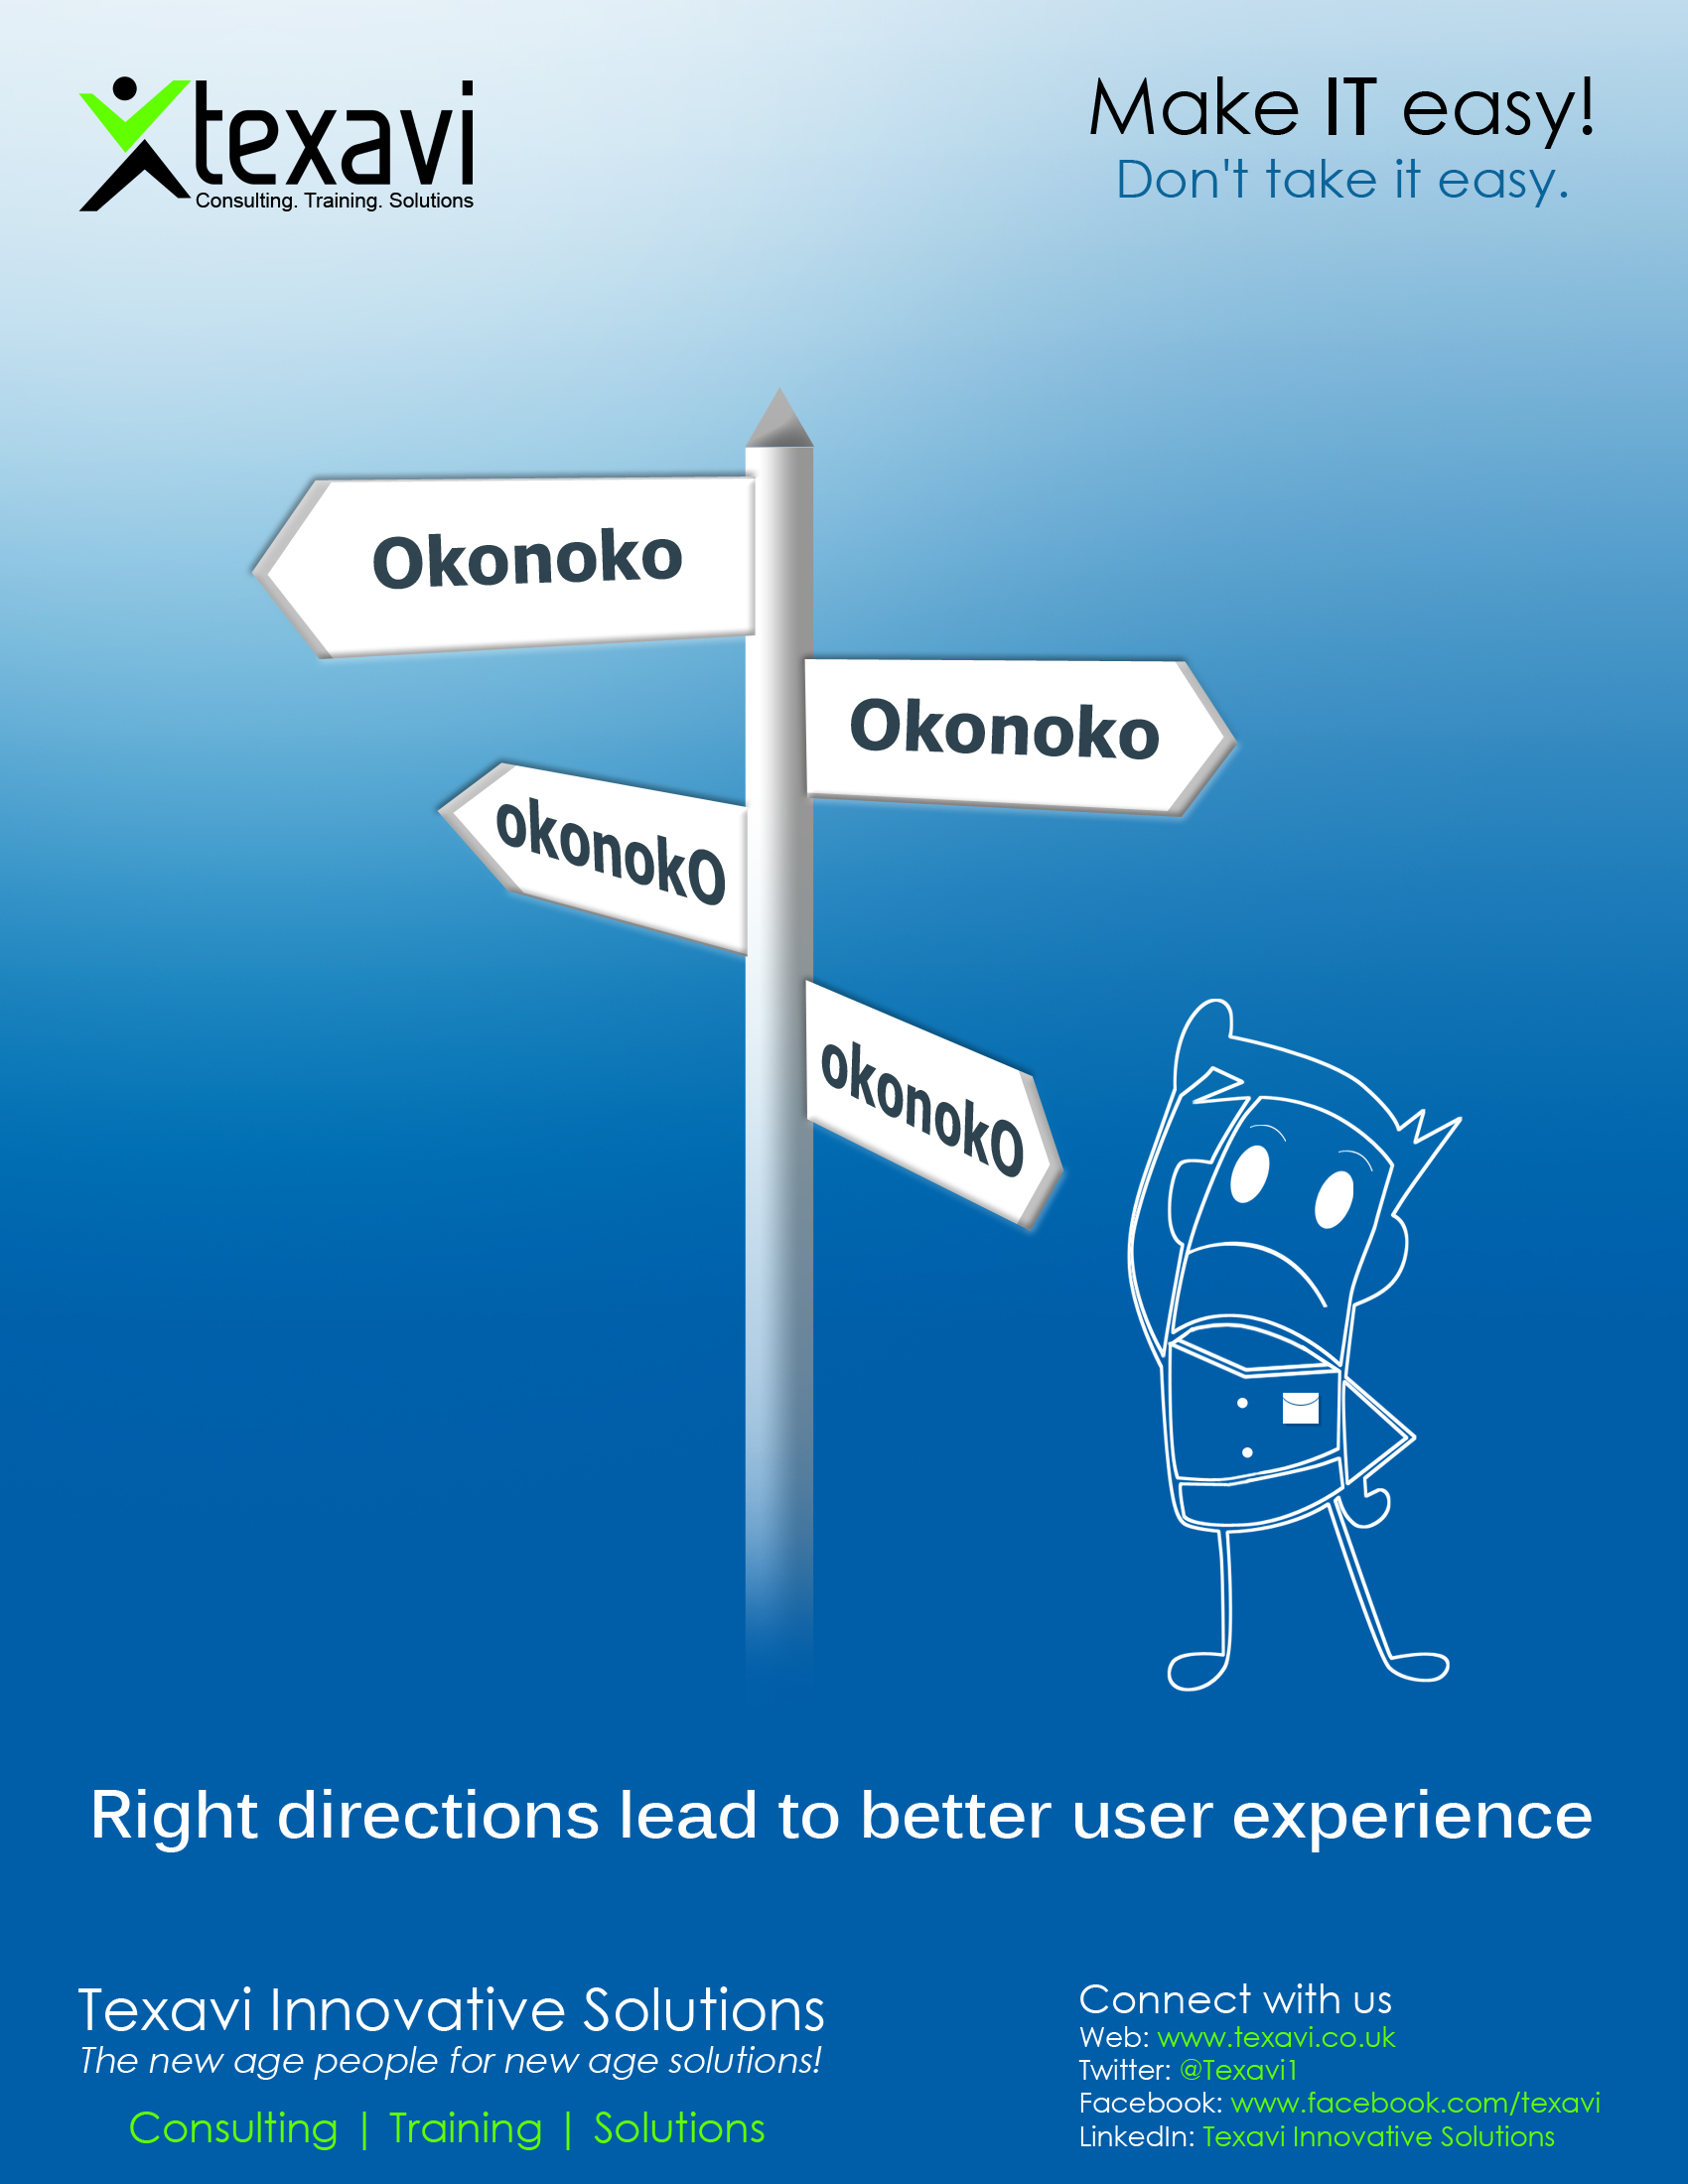 Right navigation leads to better user experience!